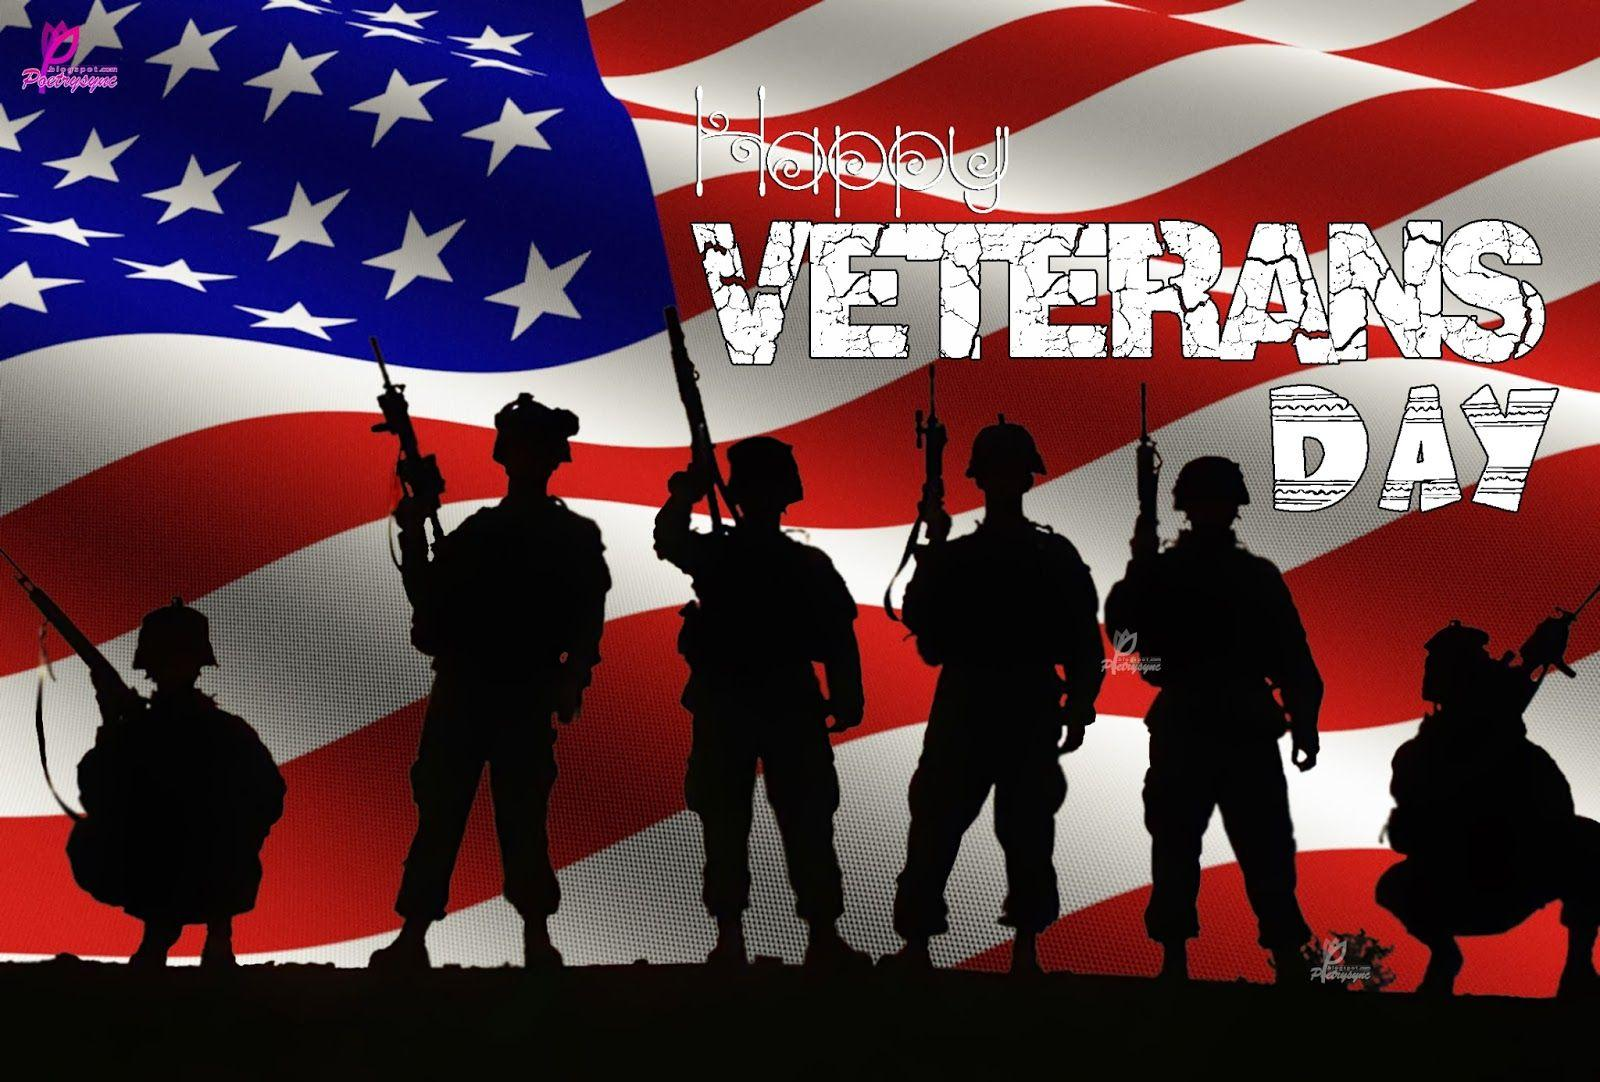 Veterans Day Wallpaper Group (64+)